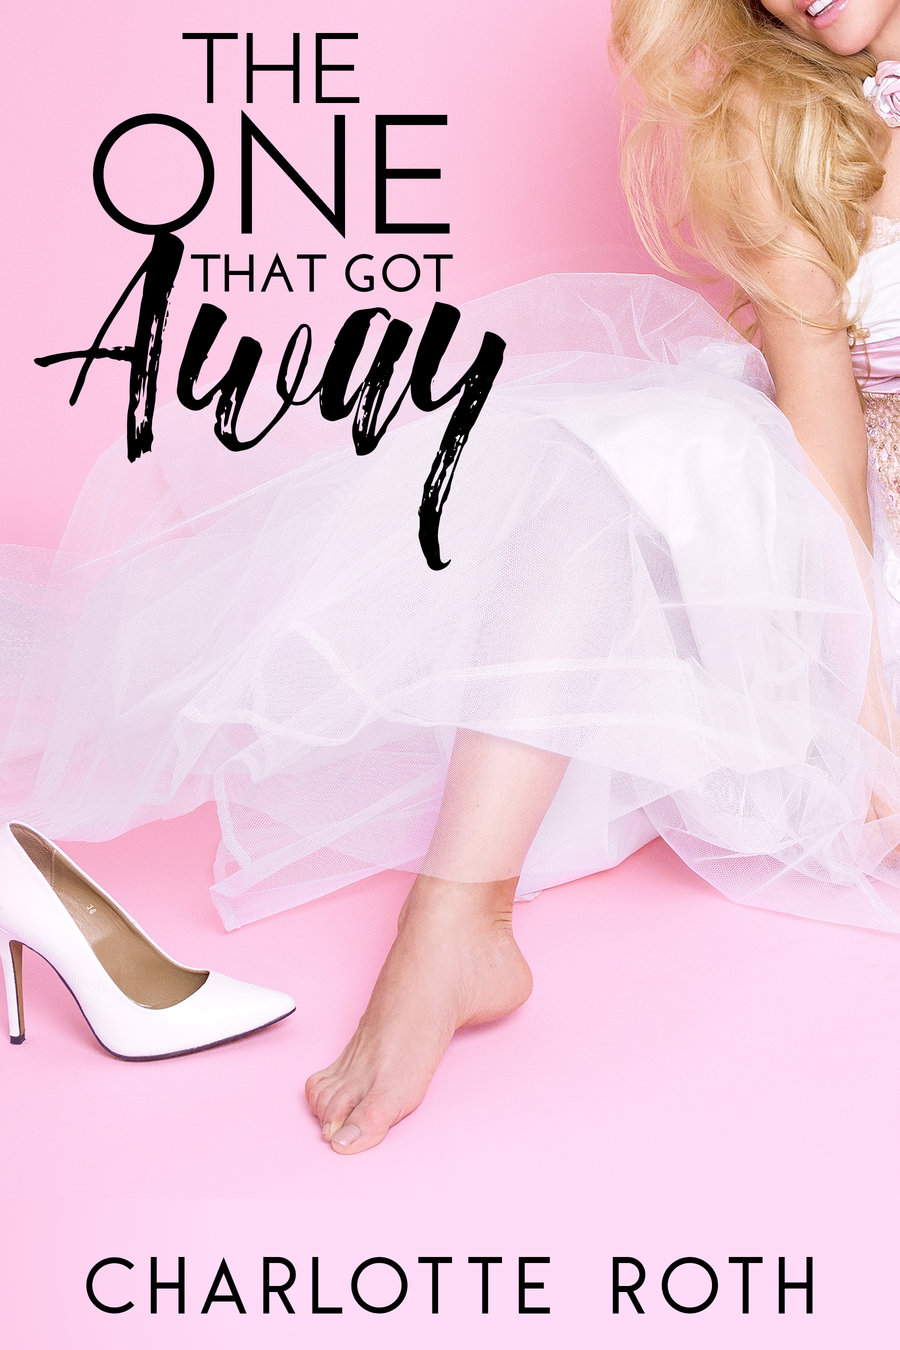 rsz_2_the_one_that_got_away_e-book_cover